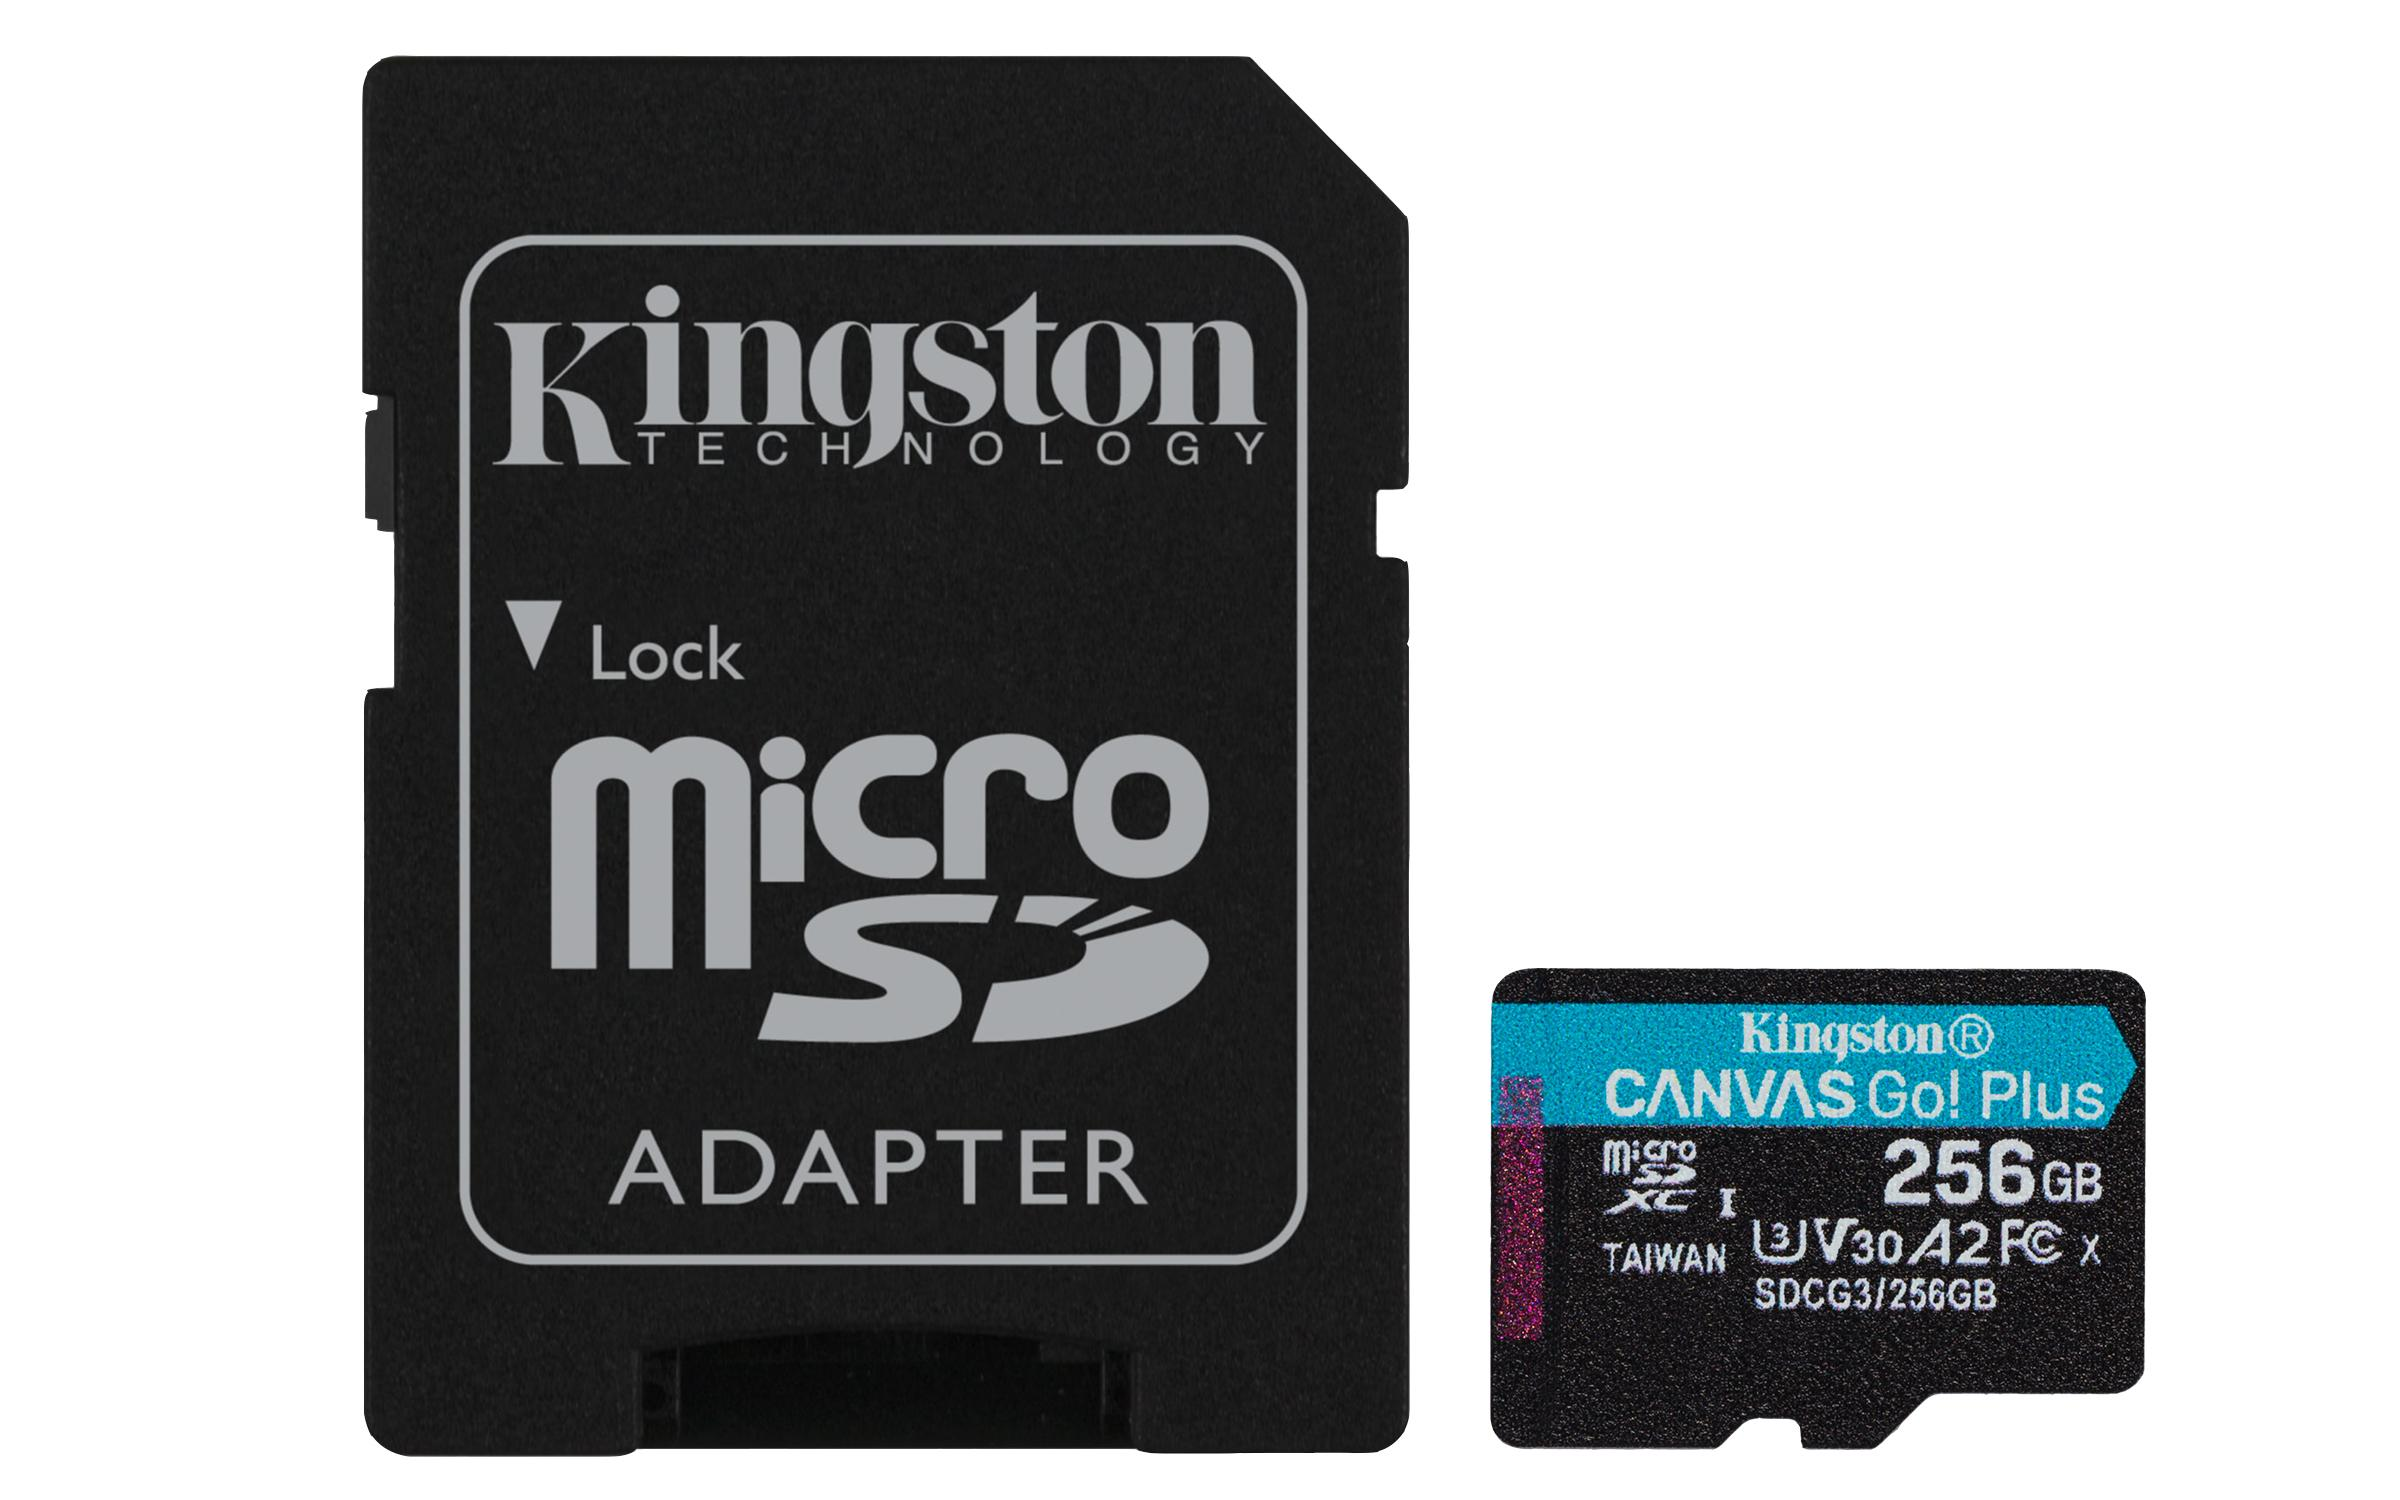 Карта памет Kingston Canvas Go! Plus, 256GB, UHS-I, Class 10, U3, V30, A2, Адаптер